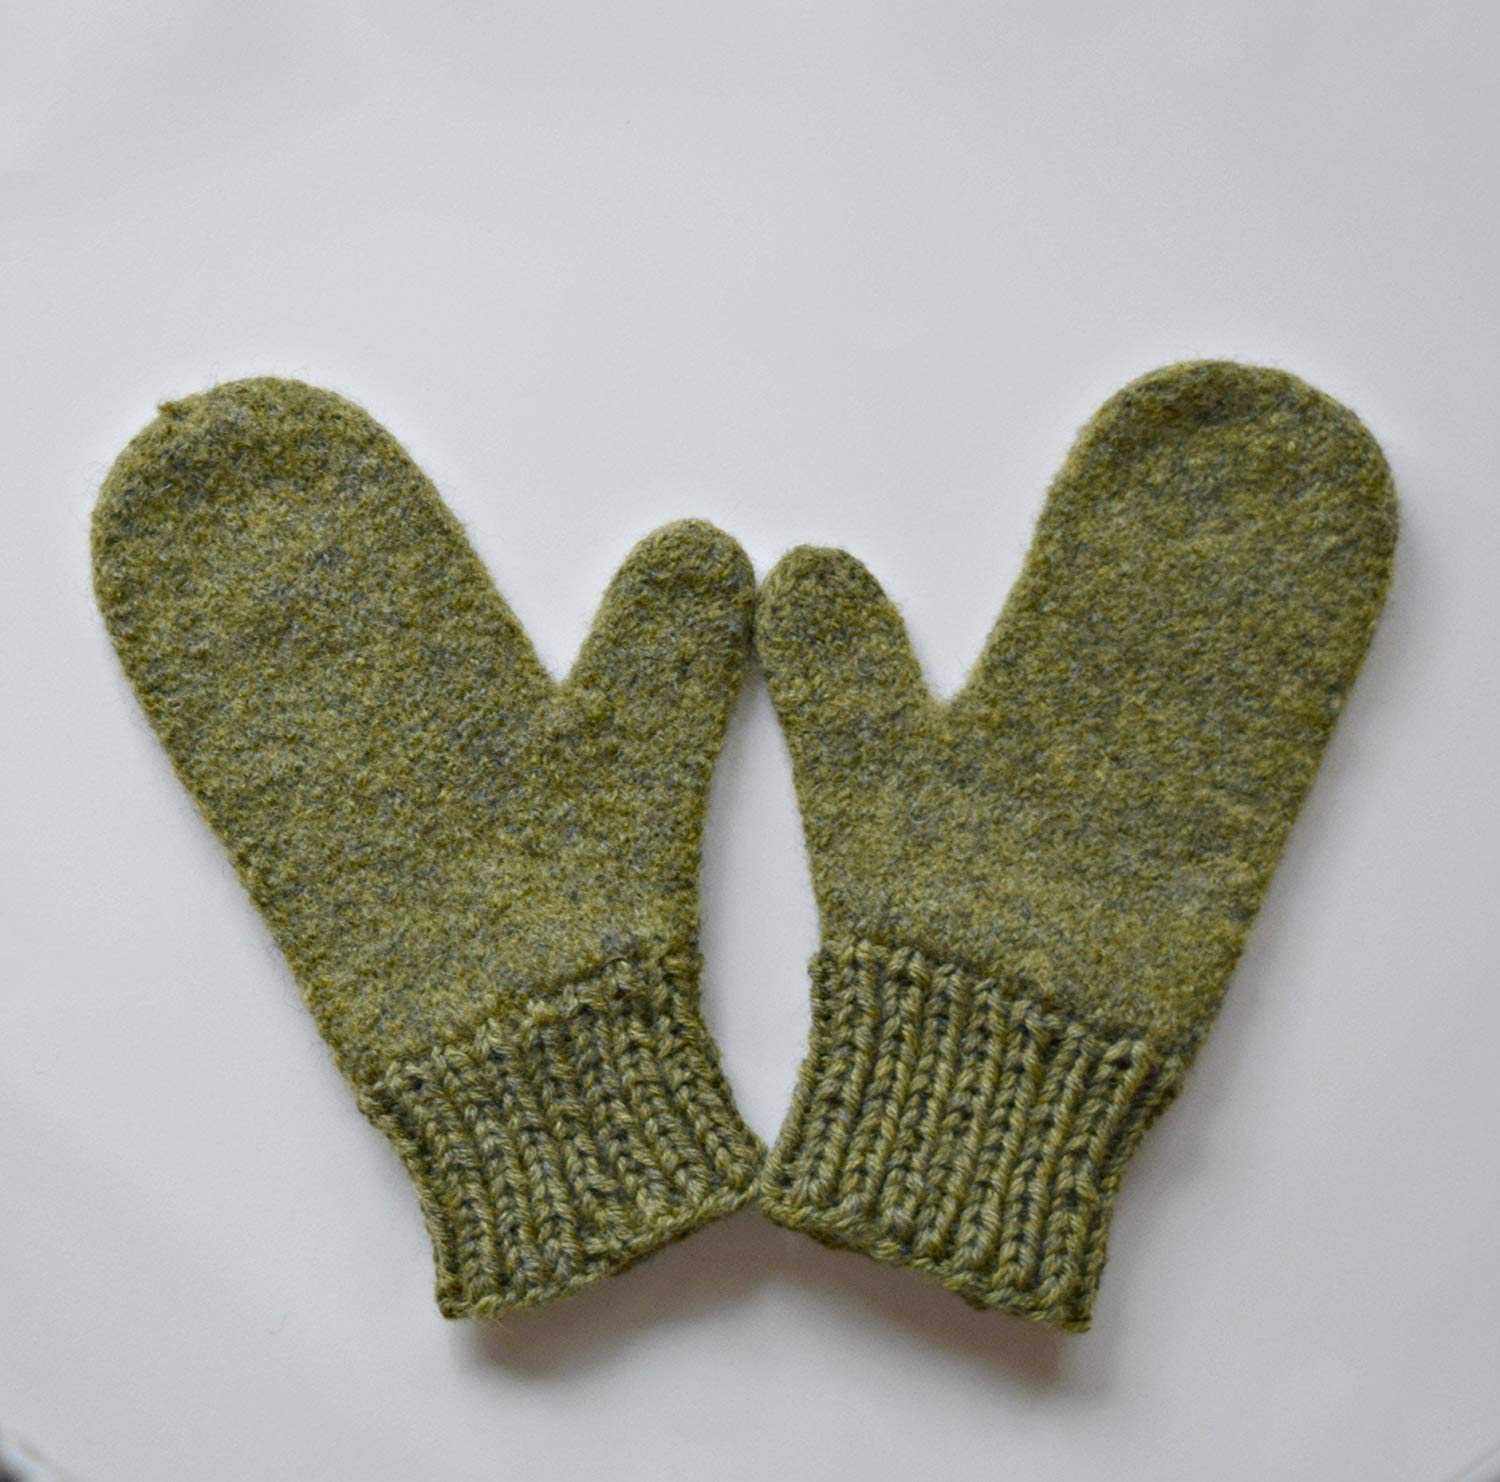 91b452b1d Clothing, Shoes & Accessories Childrens Womens Mens Mittens Hand Knit  Mittens Child Adult Boys Girls Ladies Teens Gloves Cream Gray ...